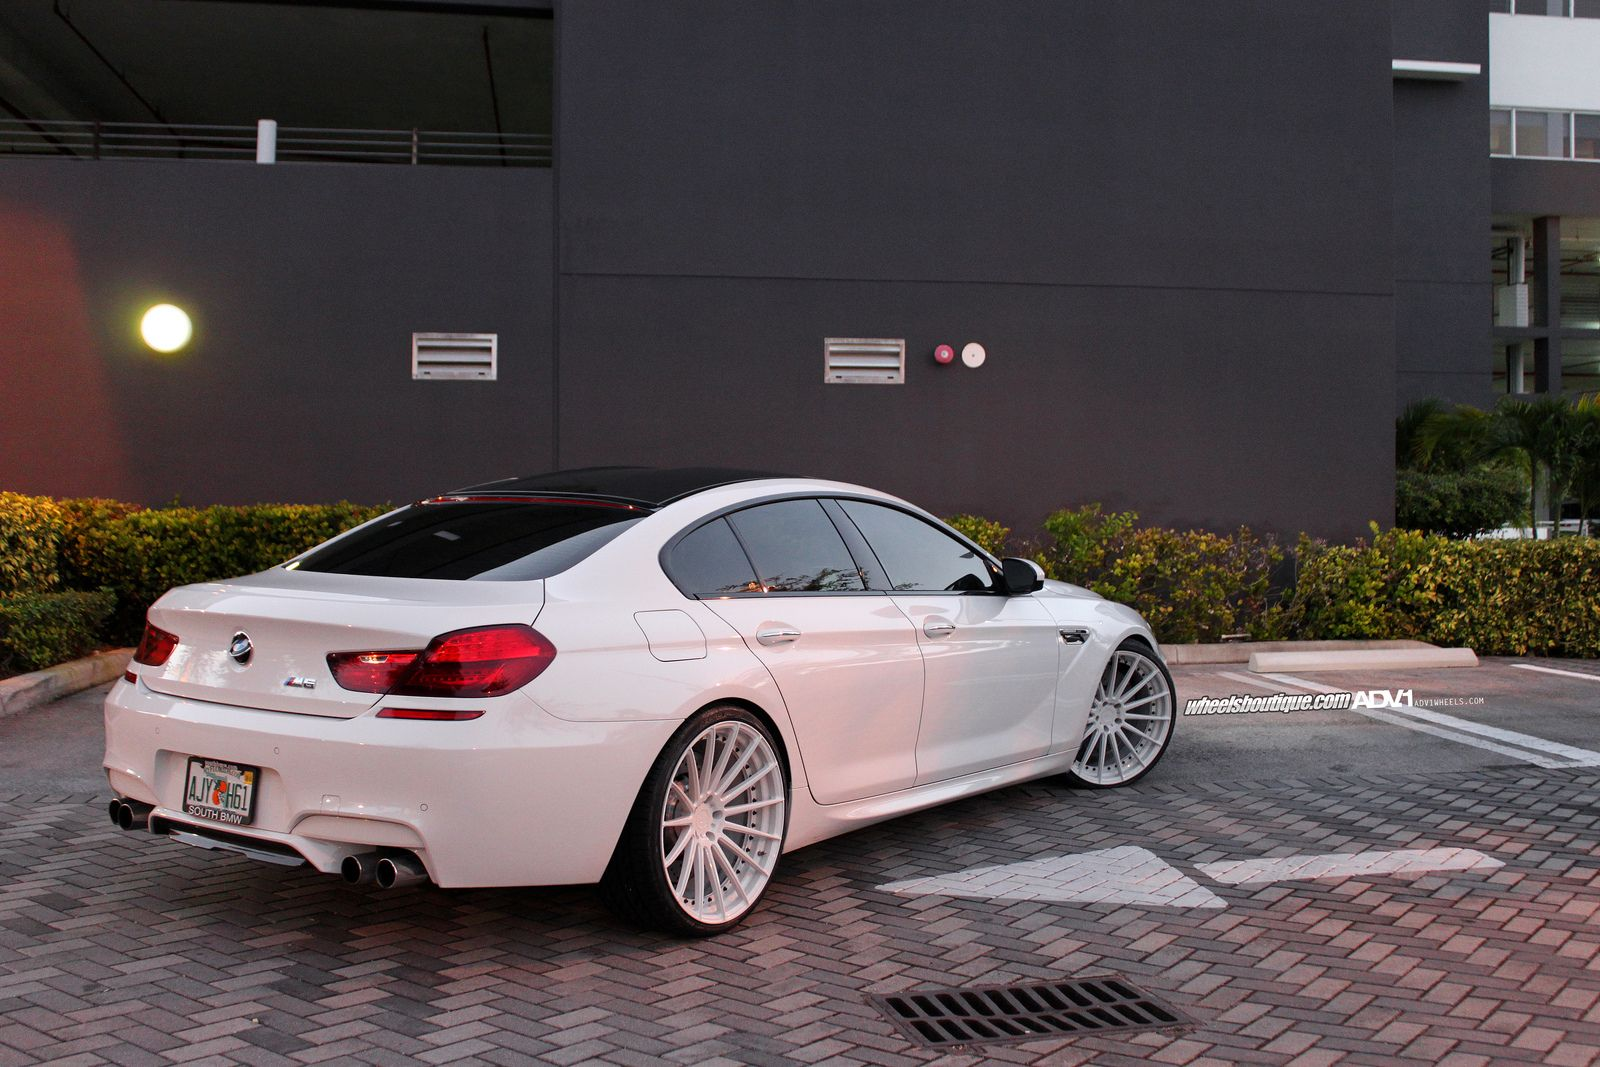 bmw m6 gran coupe on adv 1 mv2 wheels tuning pinterest. Black Bedroom Furniture Sets. Home Design Ideas